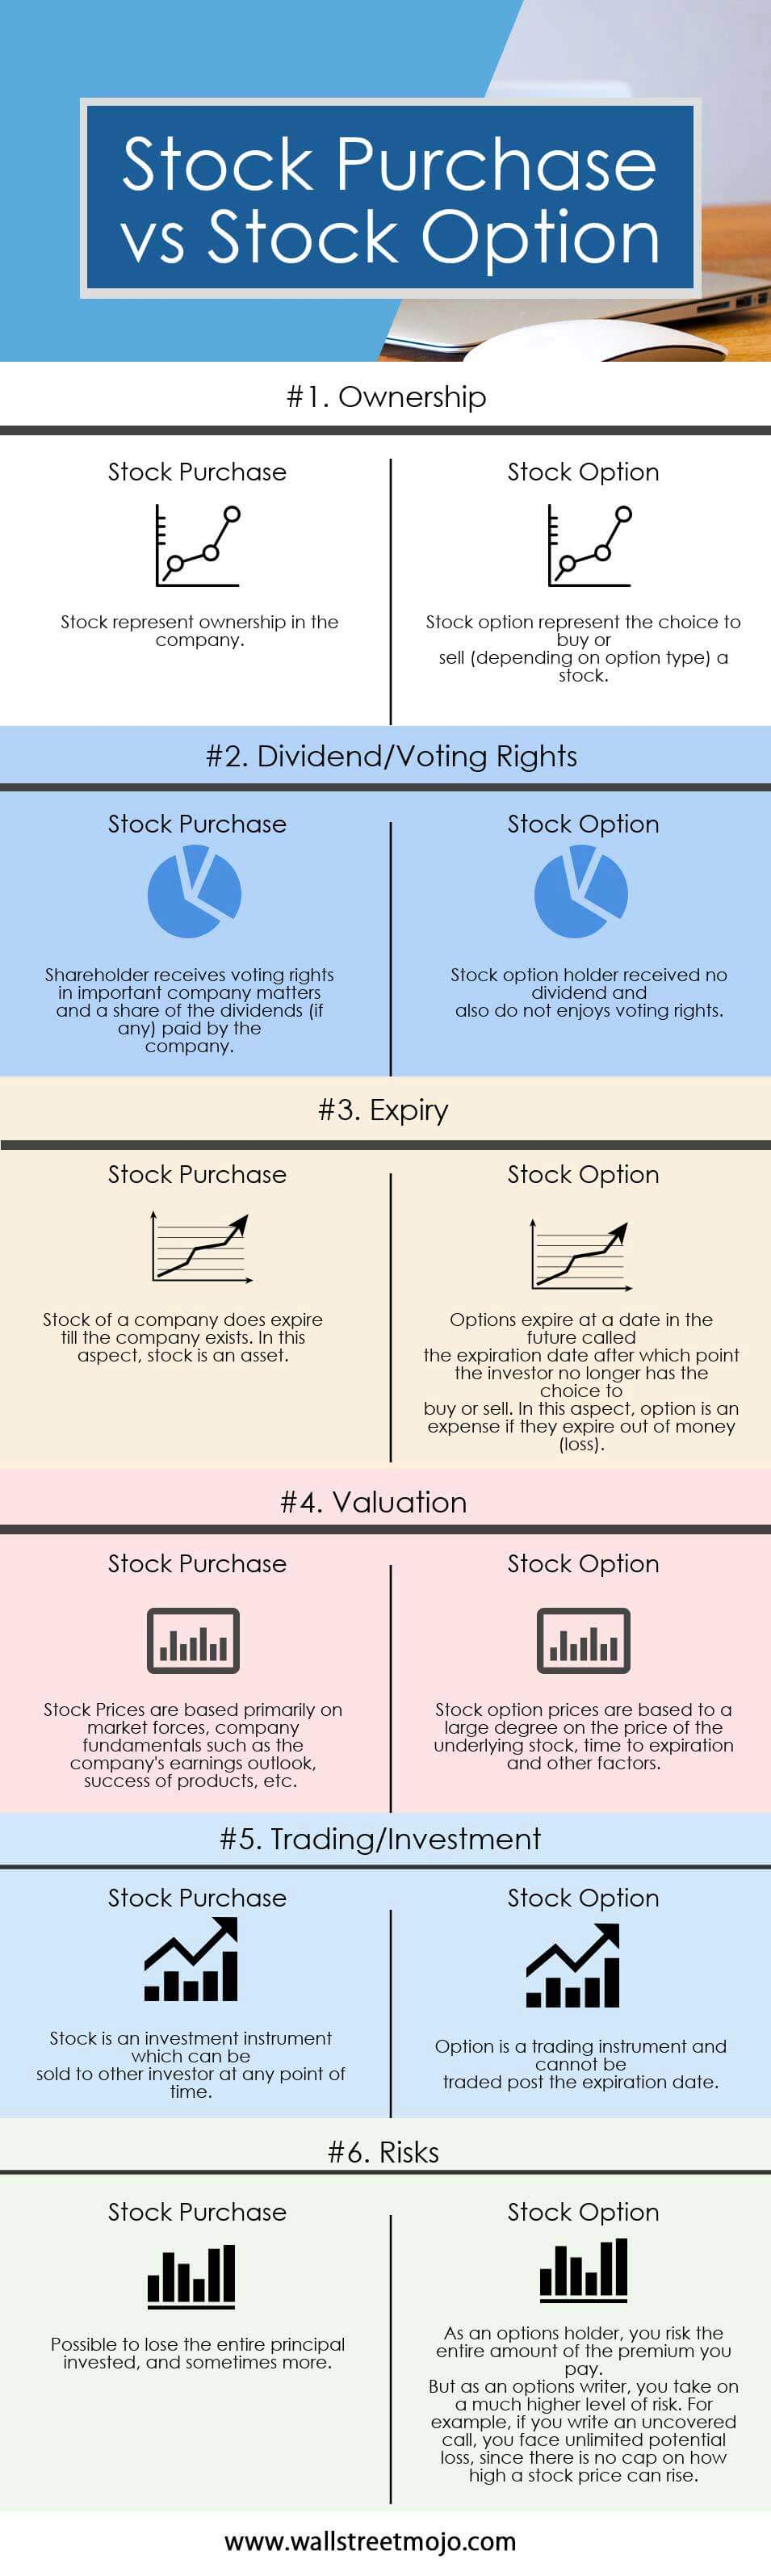 De stock options